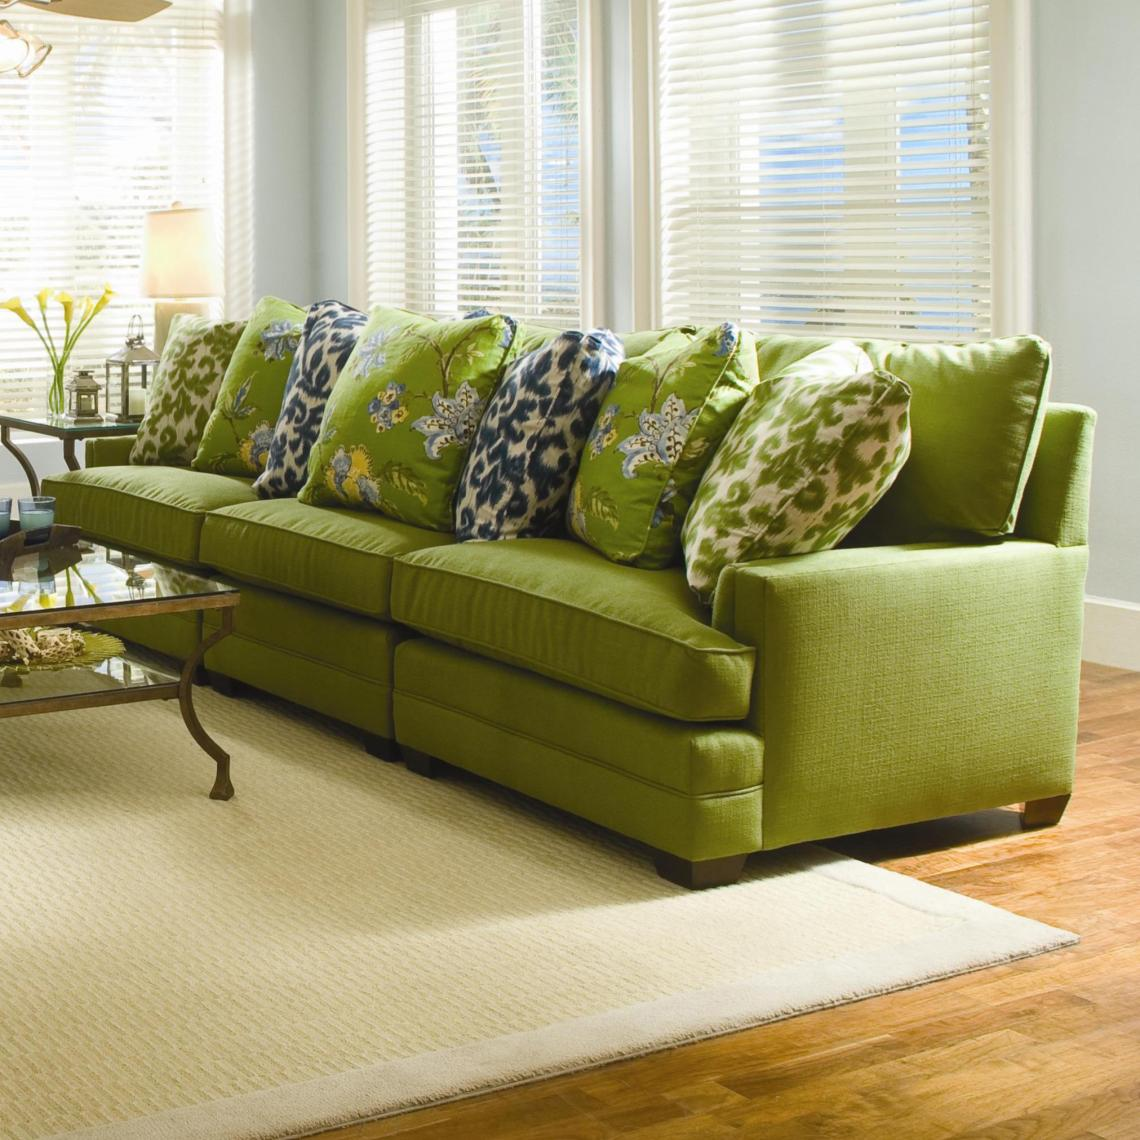 Image Result For How To Decorate A Living Room With A Sectional Couch